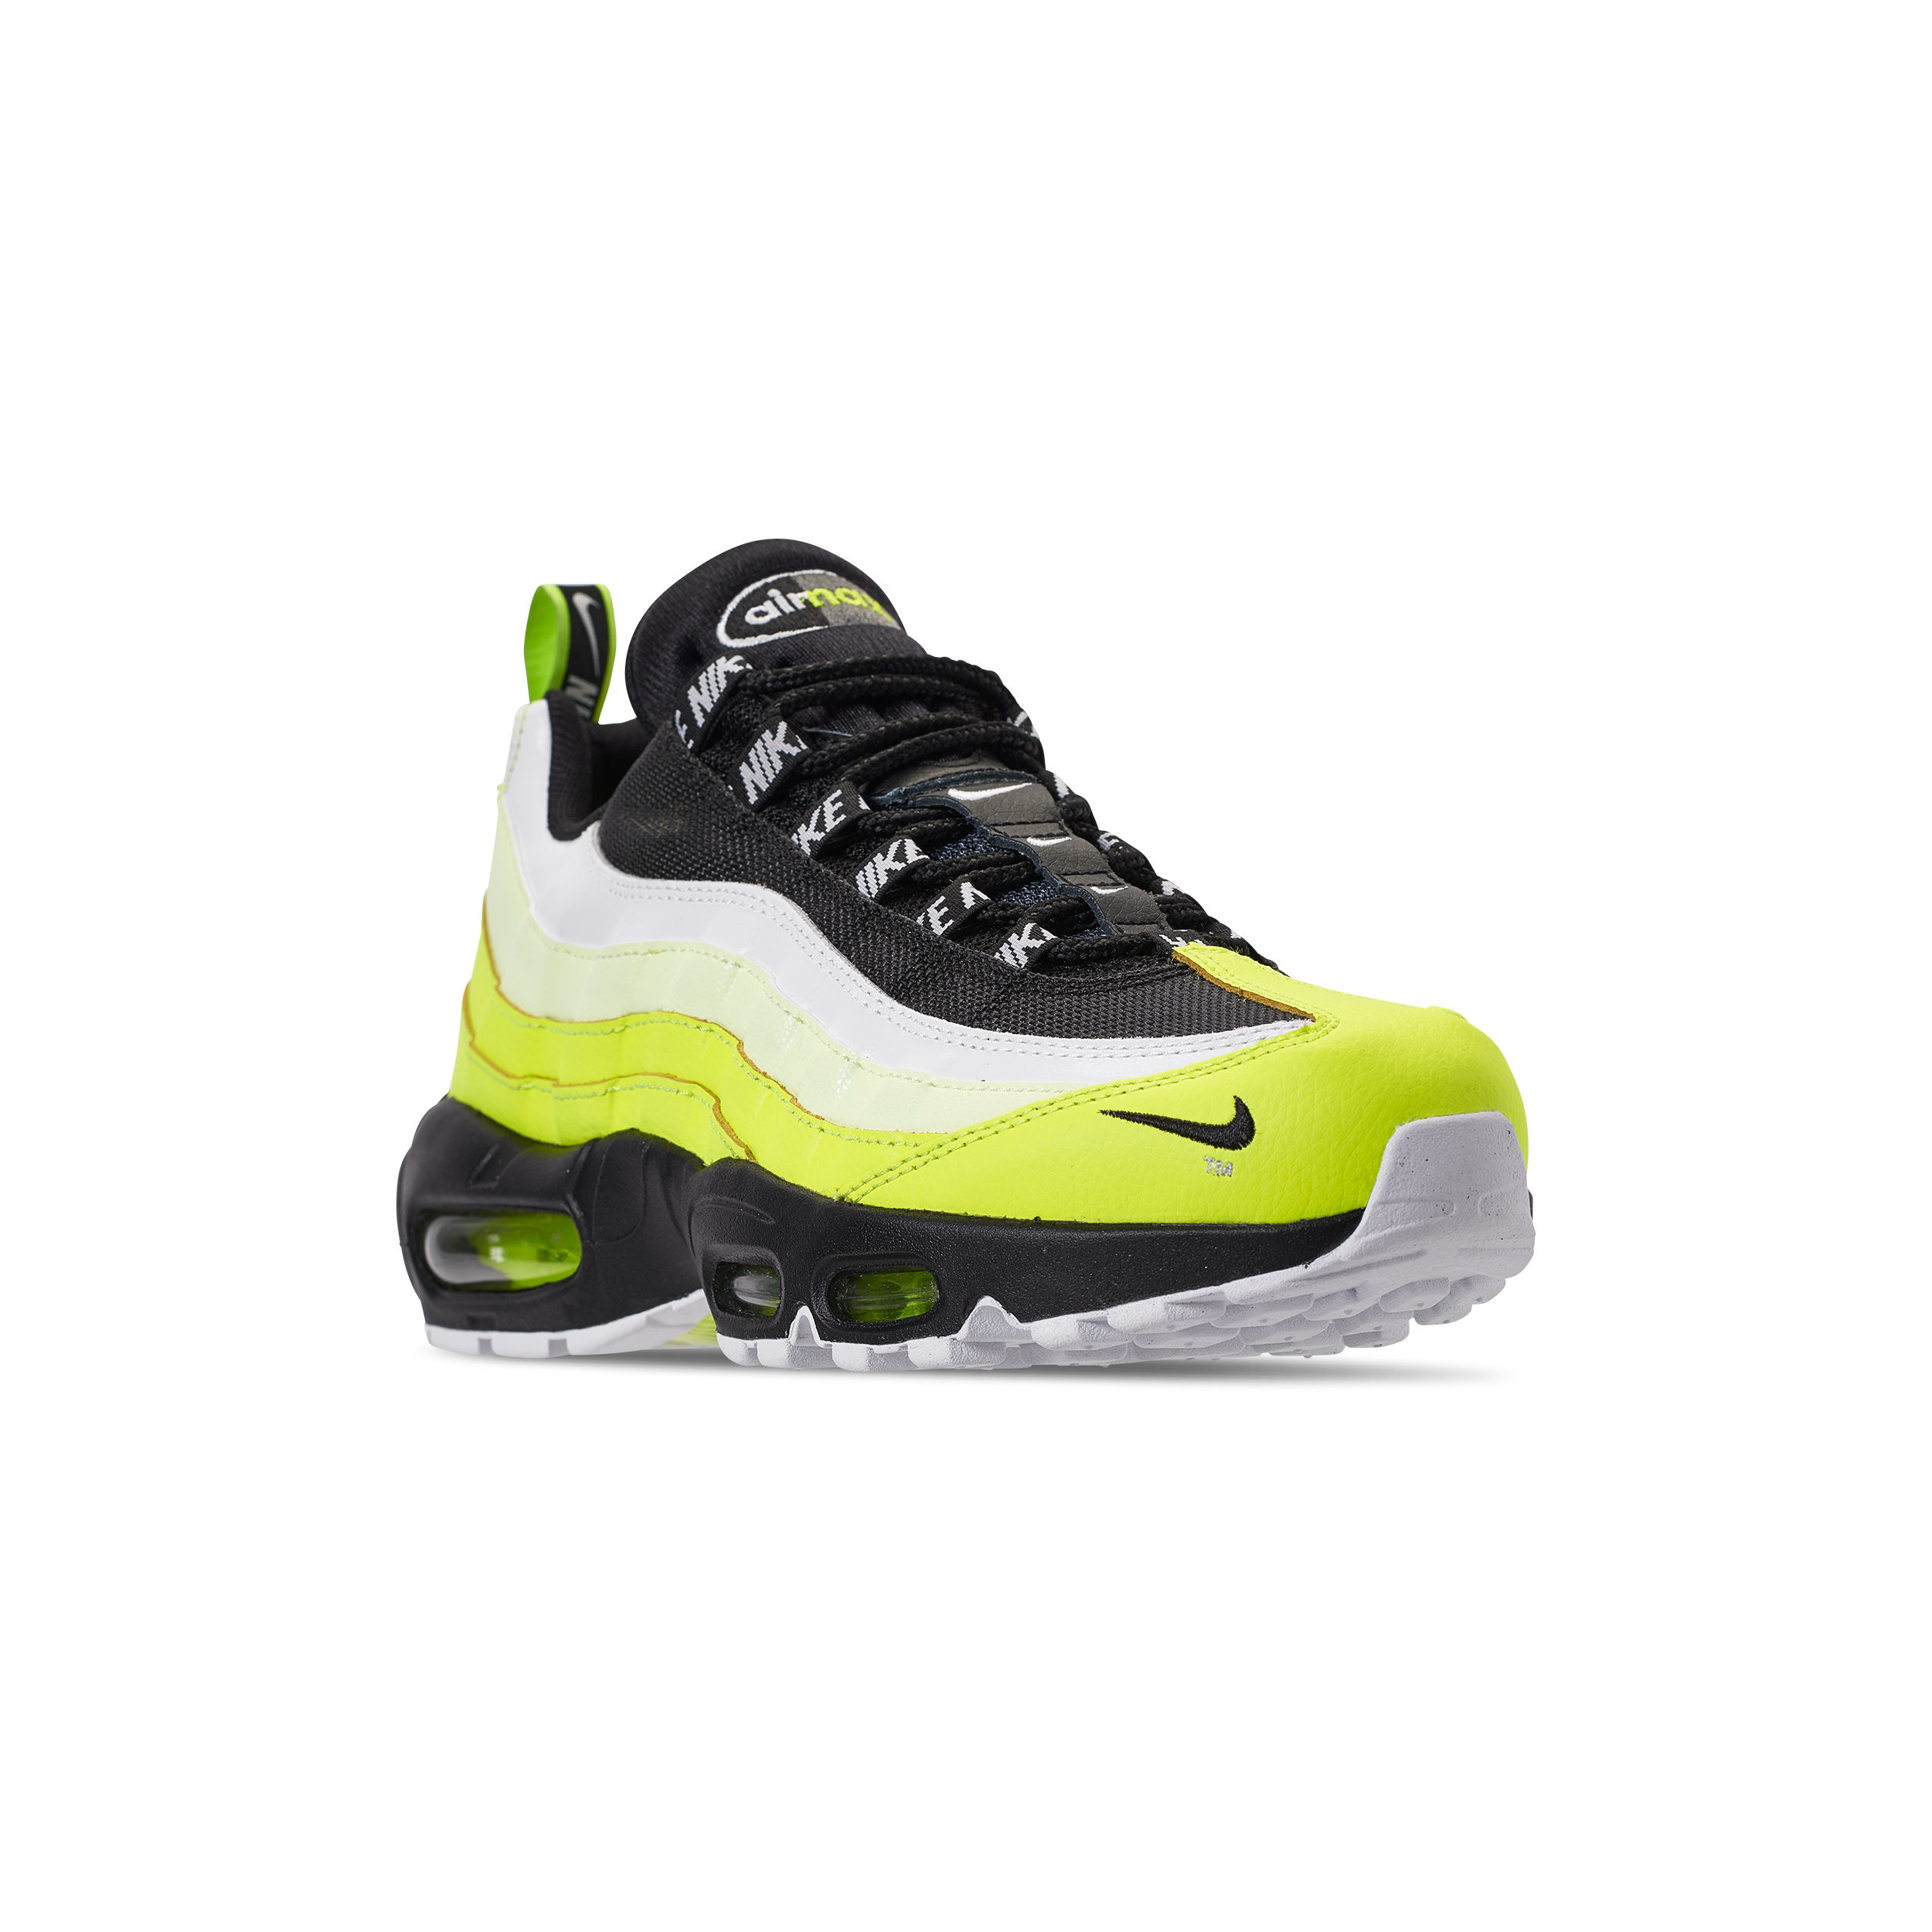 new styles 3eacd 981b0 ... italy nike air max 95 premium volt black volt glow barely volt off  white 1 bfdf4